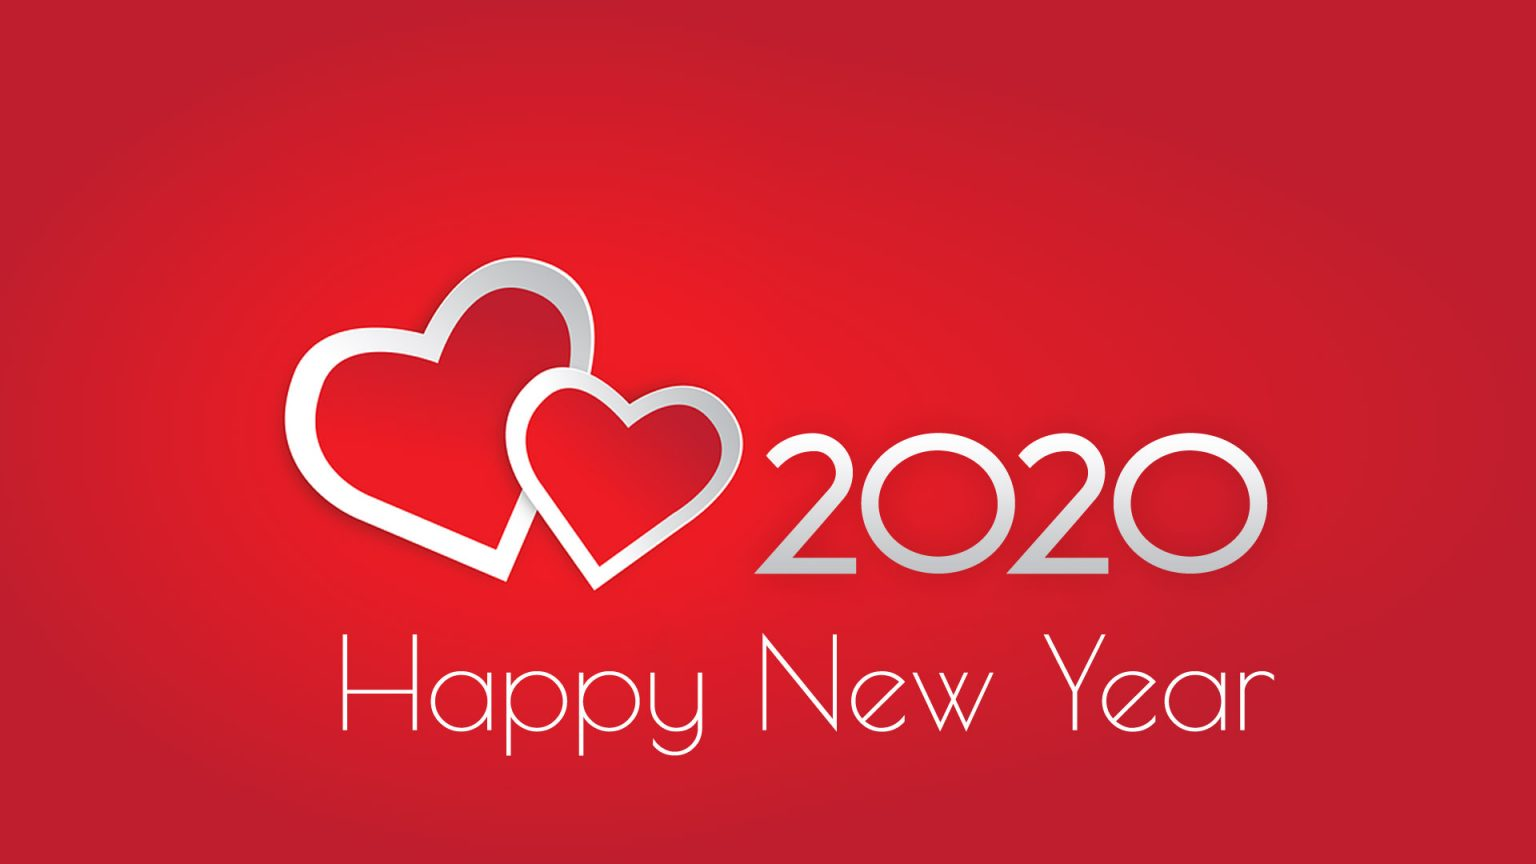 Happy New Year 2020 HD Wallpapers, Images, Pictures, Gifs | Download Here